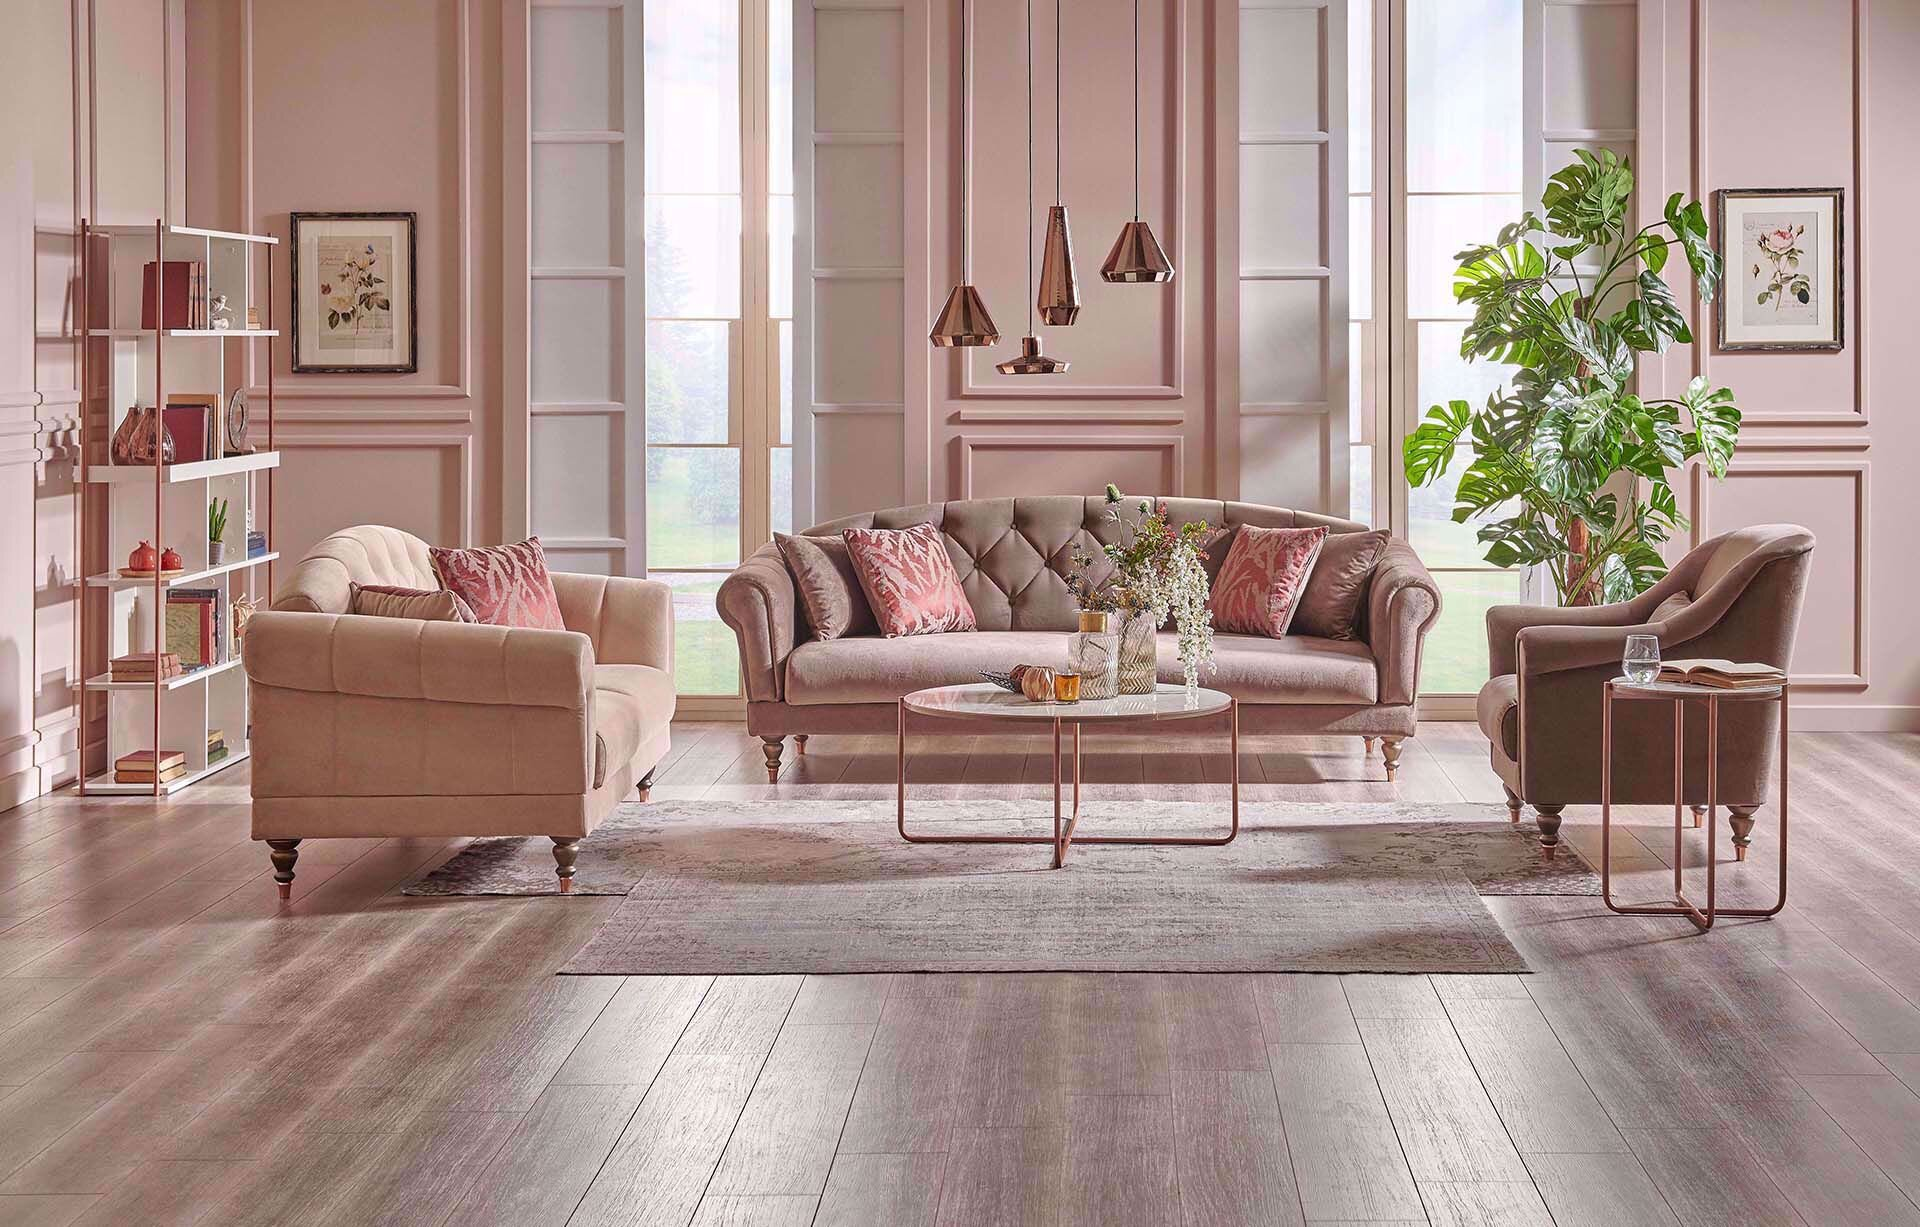 Picture for category Sofa Sets